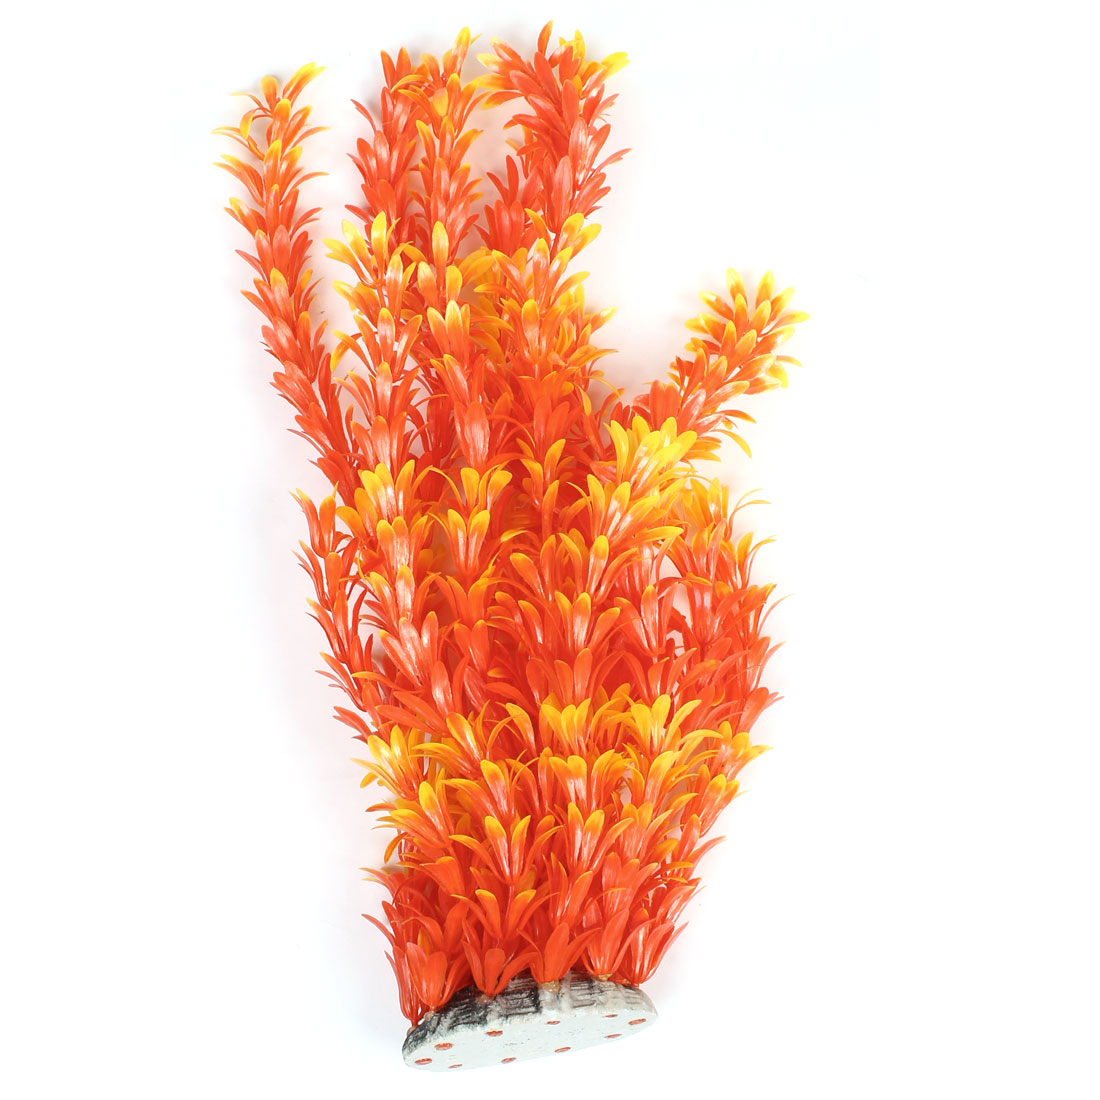 "Orange Red Yellow Emulational Underwater Plant Decor 15.7"" Height for Aquarium"